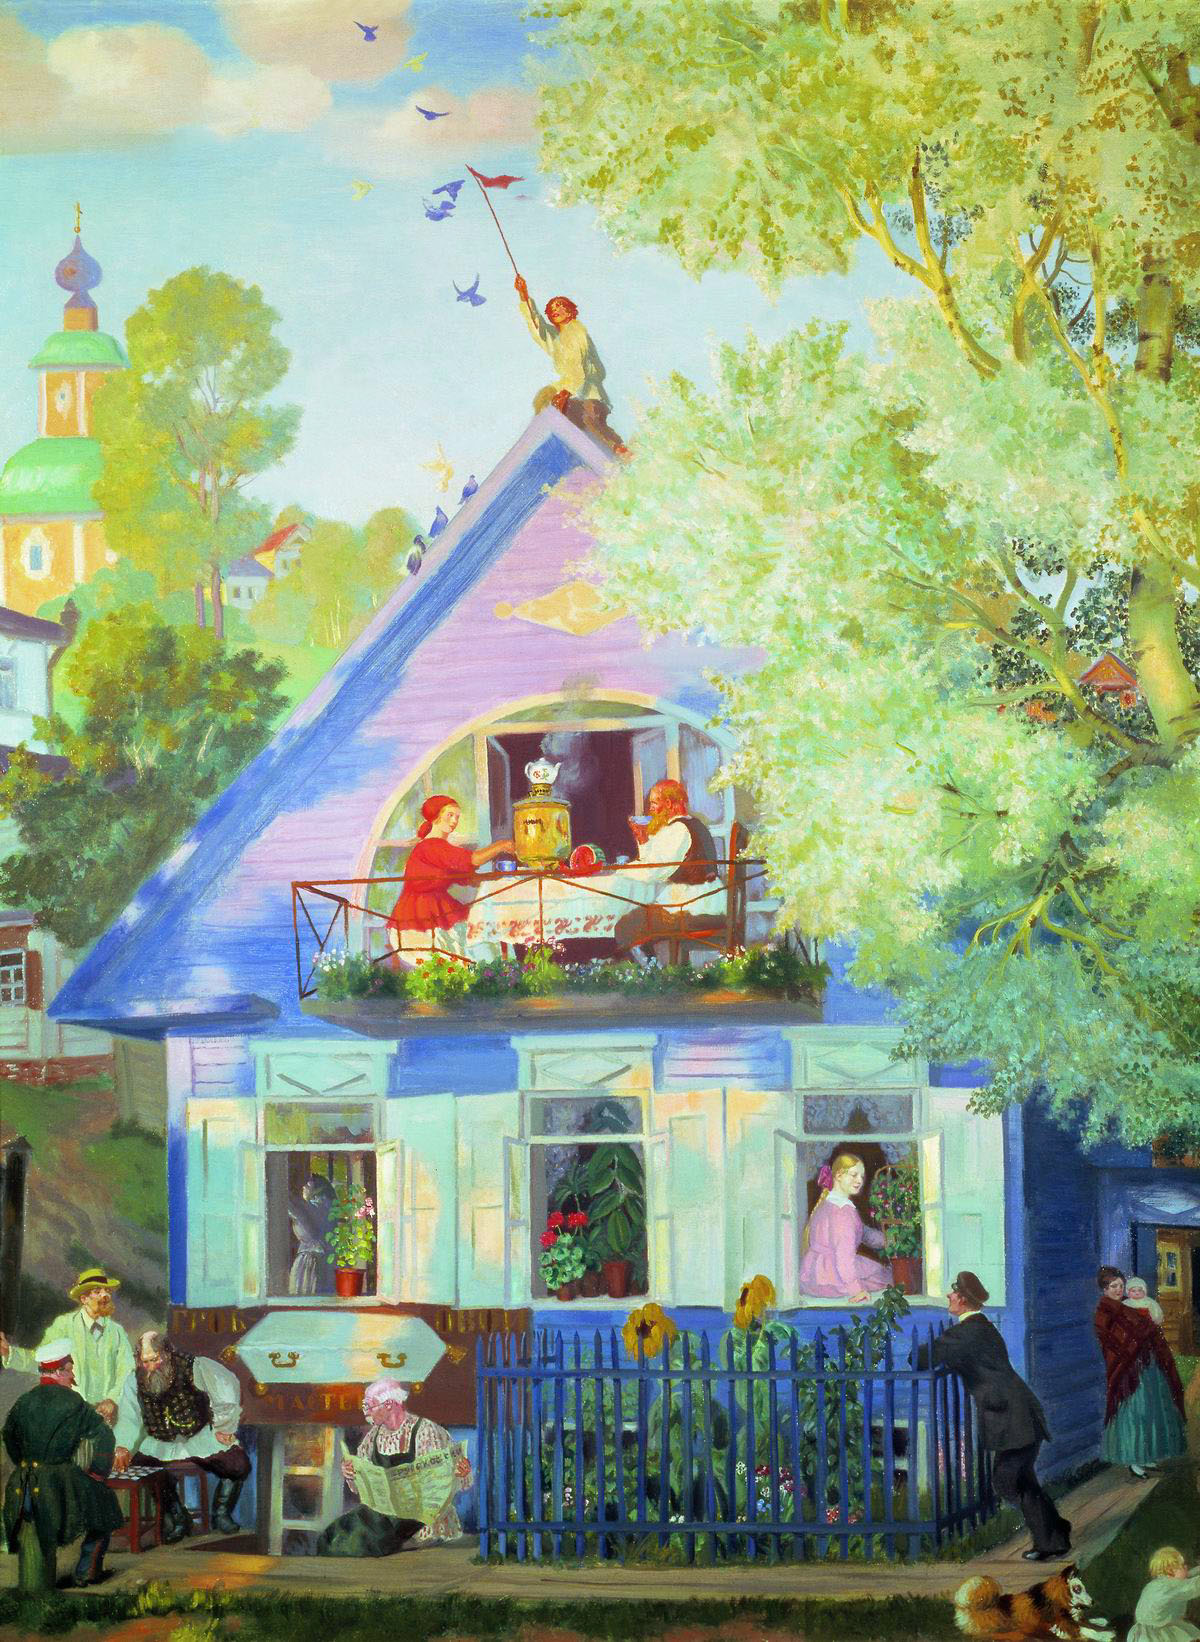 https://i1.wp.com/upload.wikimedia.org/wikipedia/commons/d/de/Kustodiev_GoluboyDomik.jpg